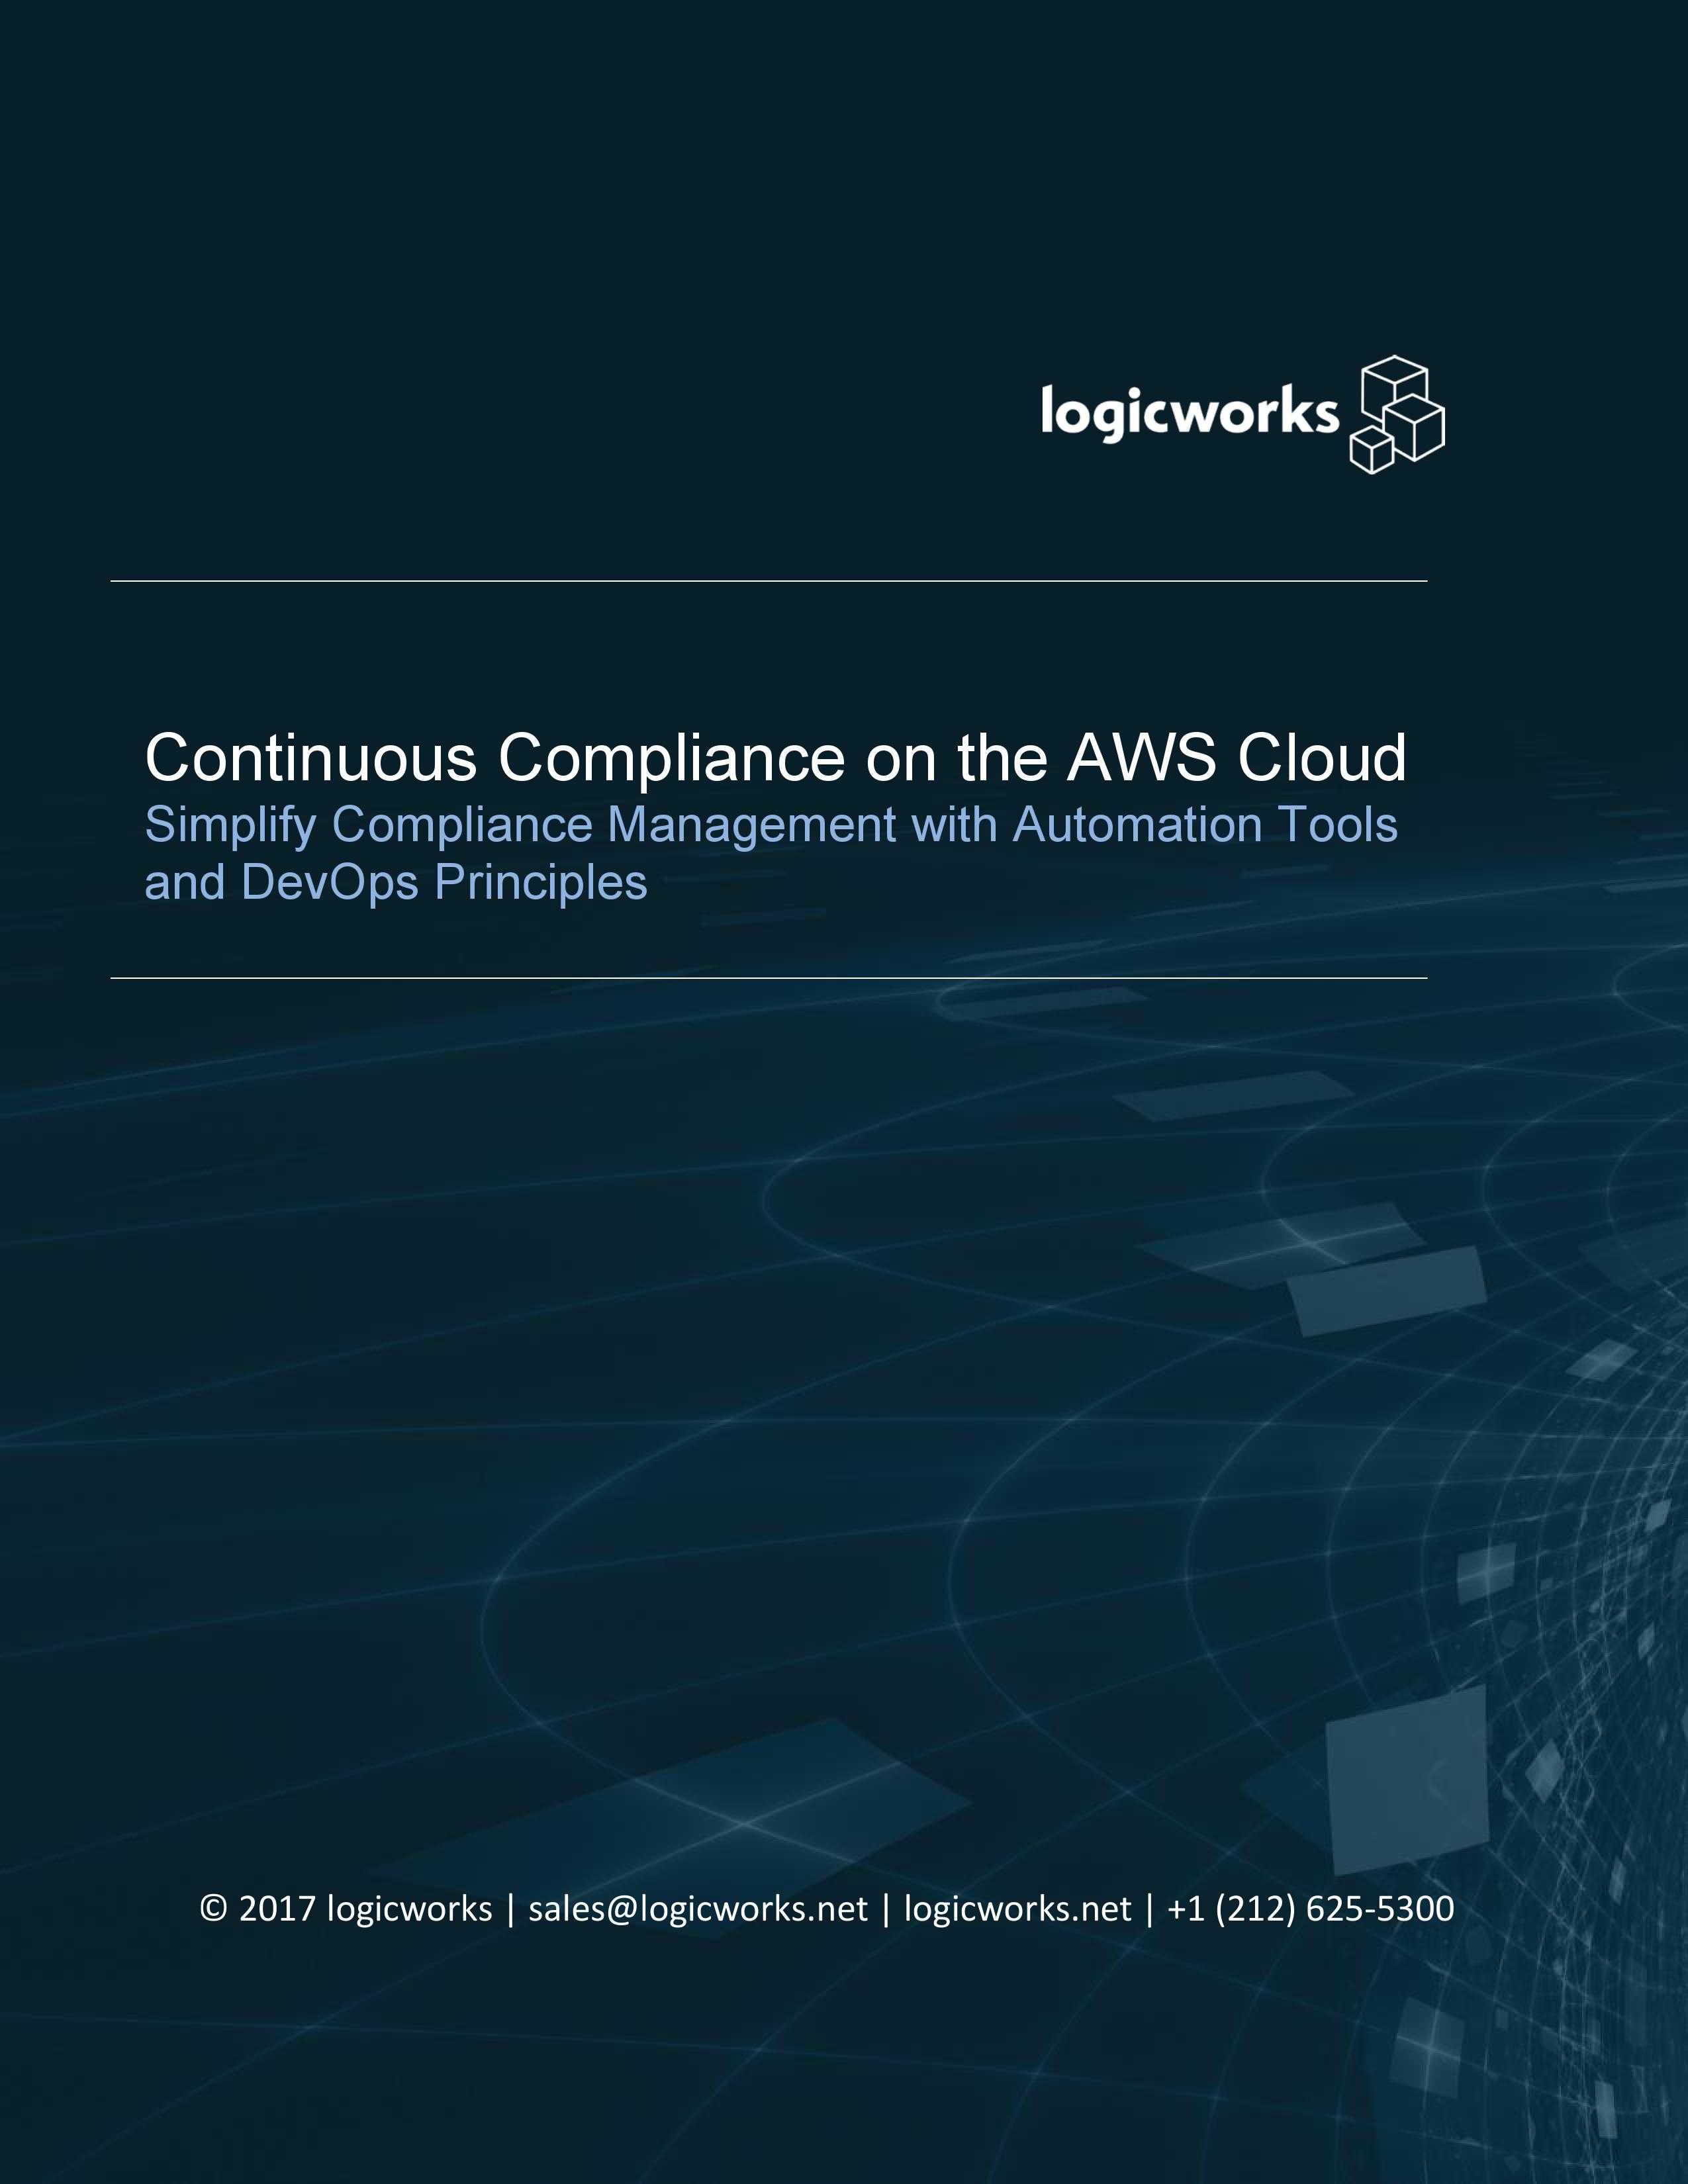 Continuous Compliance on the AWS Cloud.jpg